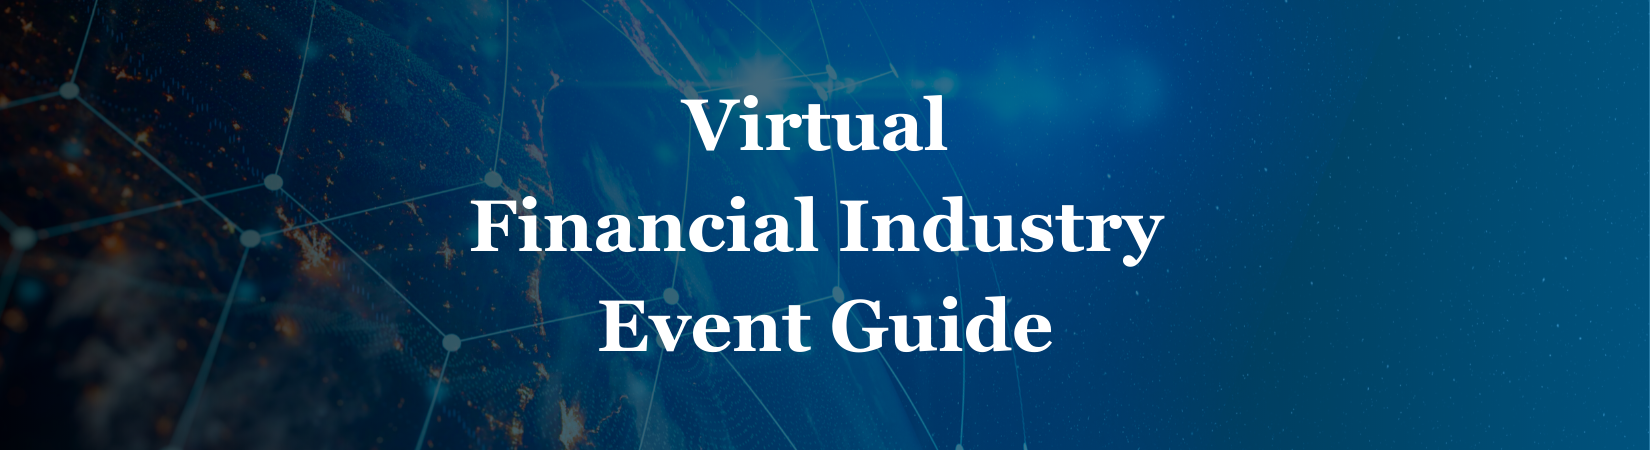 Virtual Financial Industry Event Guide